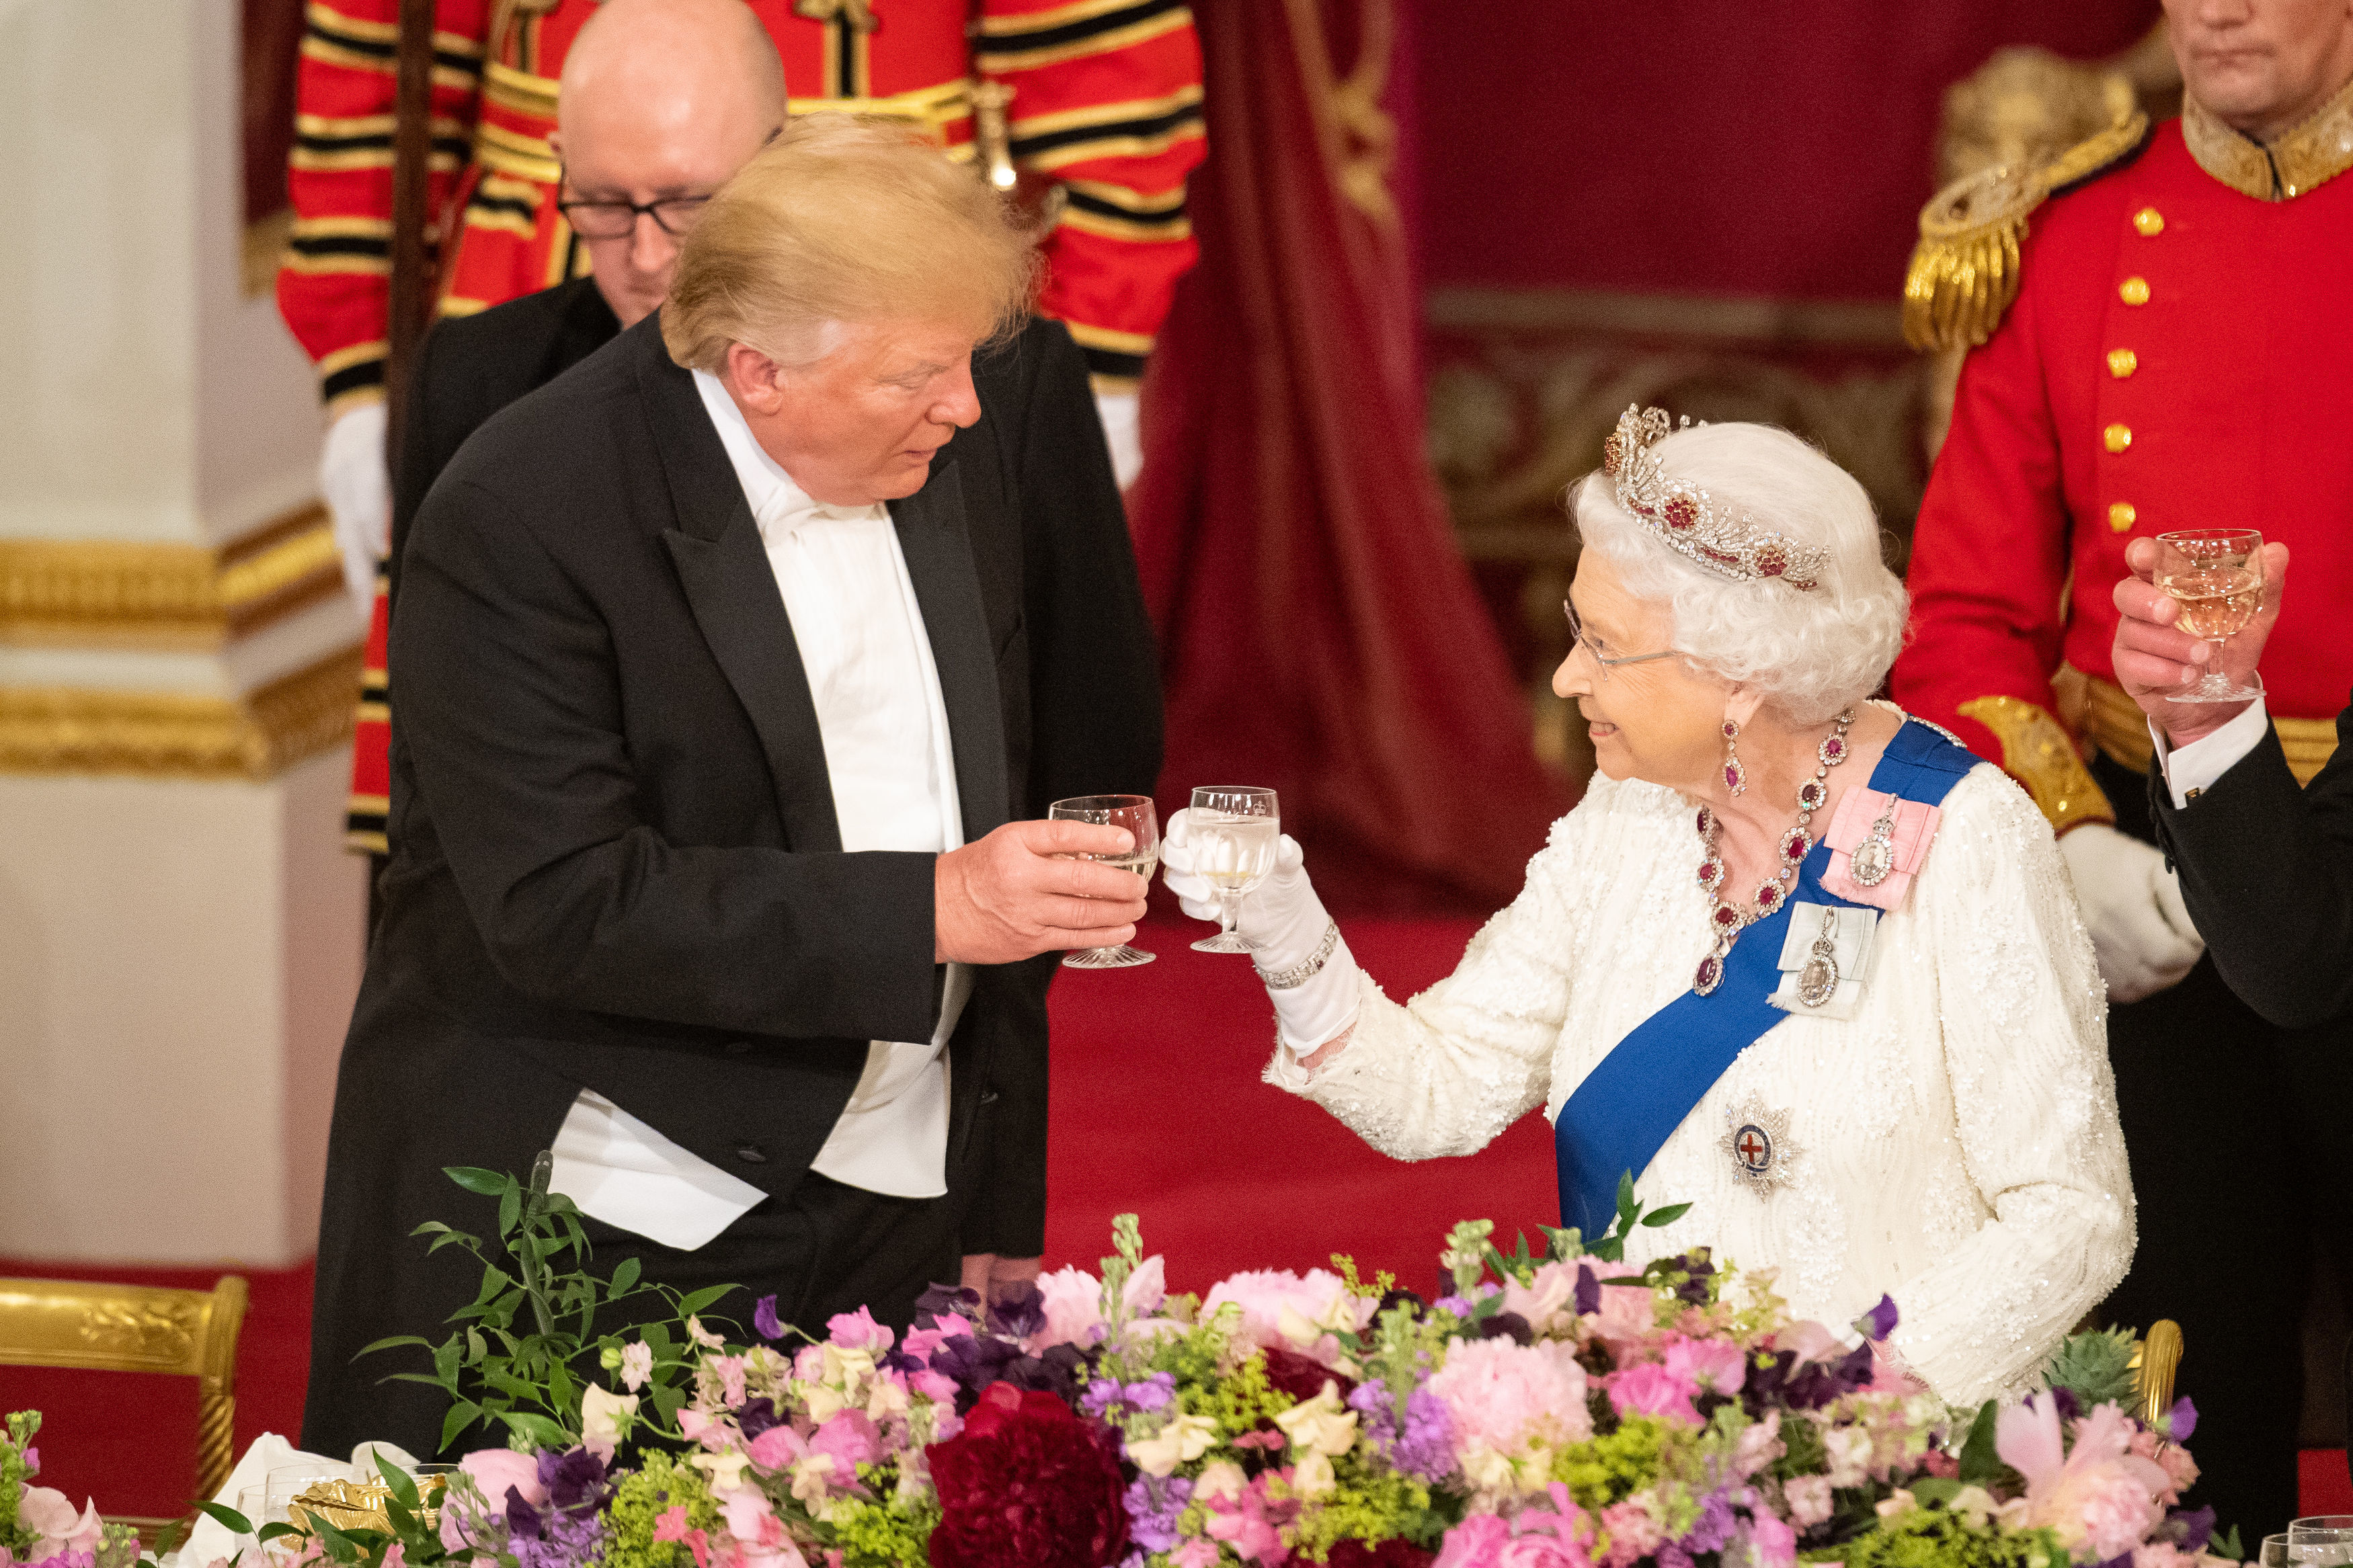 US President Donald Trump toasts the Queen